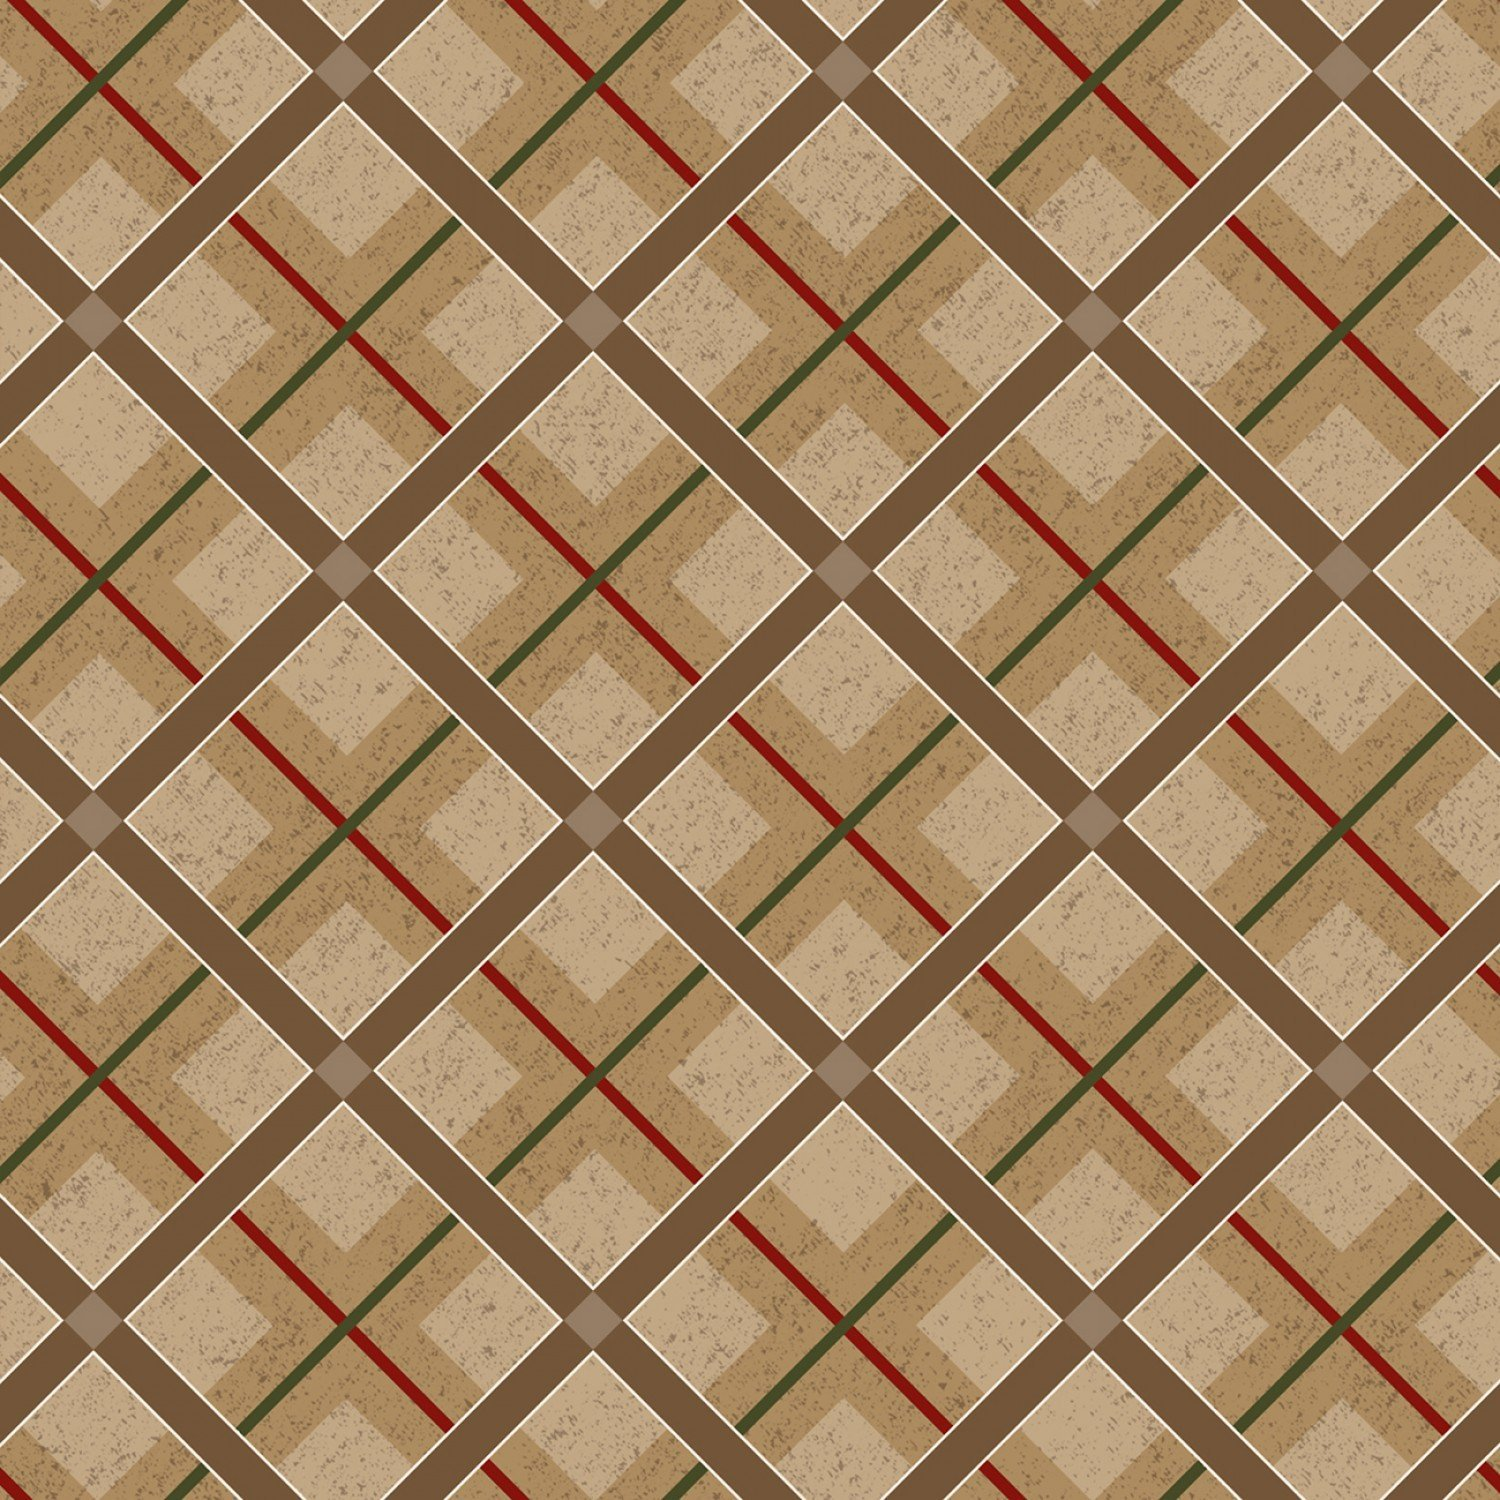 Brown Diagonal Plaid of Woodland Haven Flannel by Jan Shade Beach F1740-33